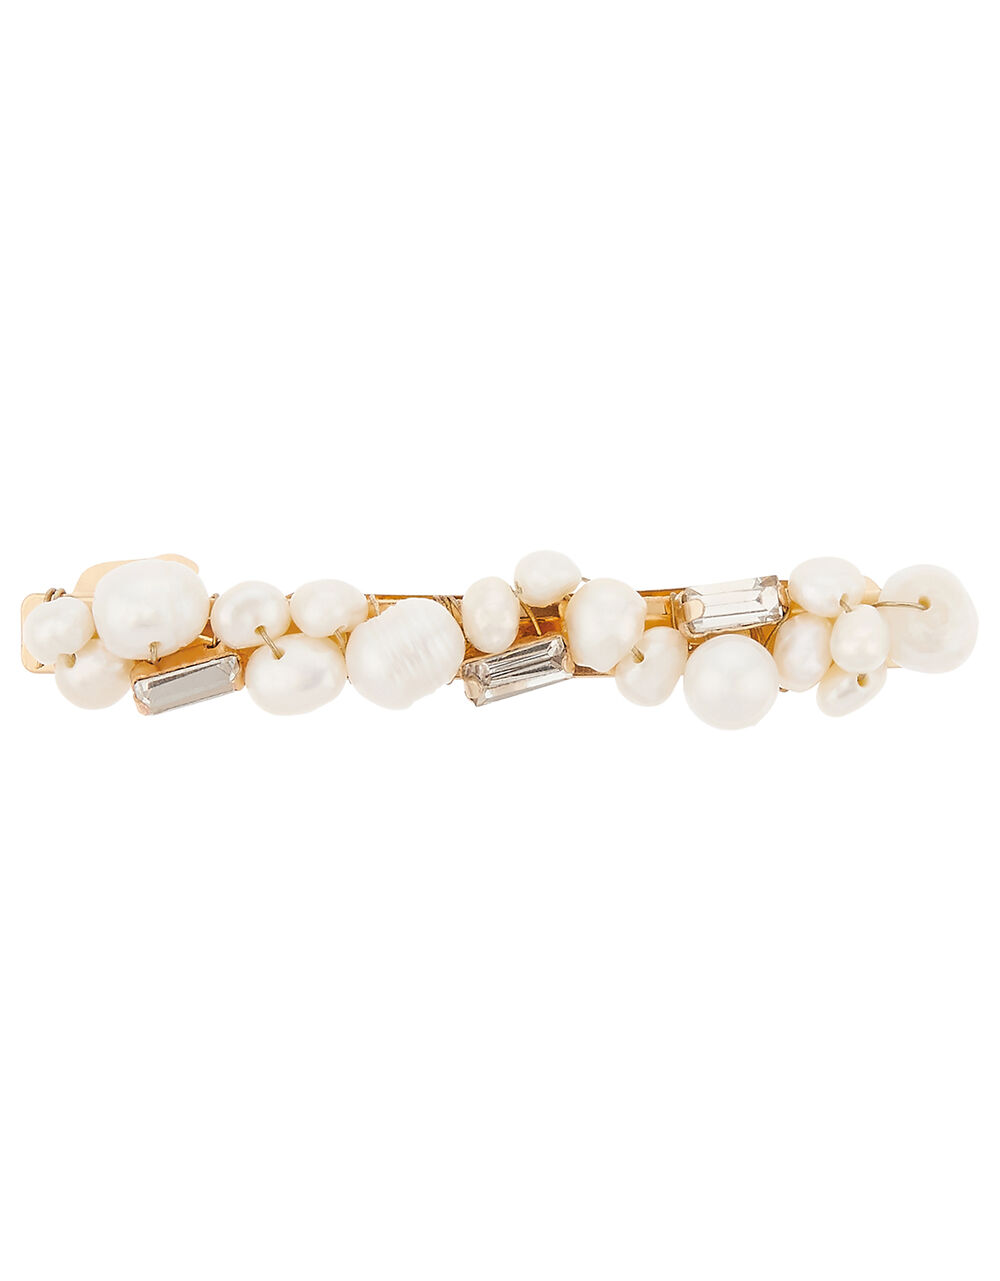 Freshwater Pearl and Sparkle Barrette Clip, , large